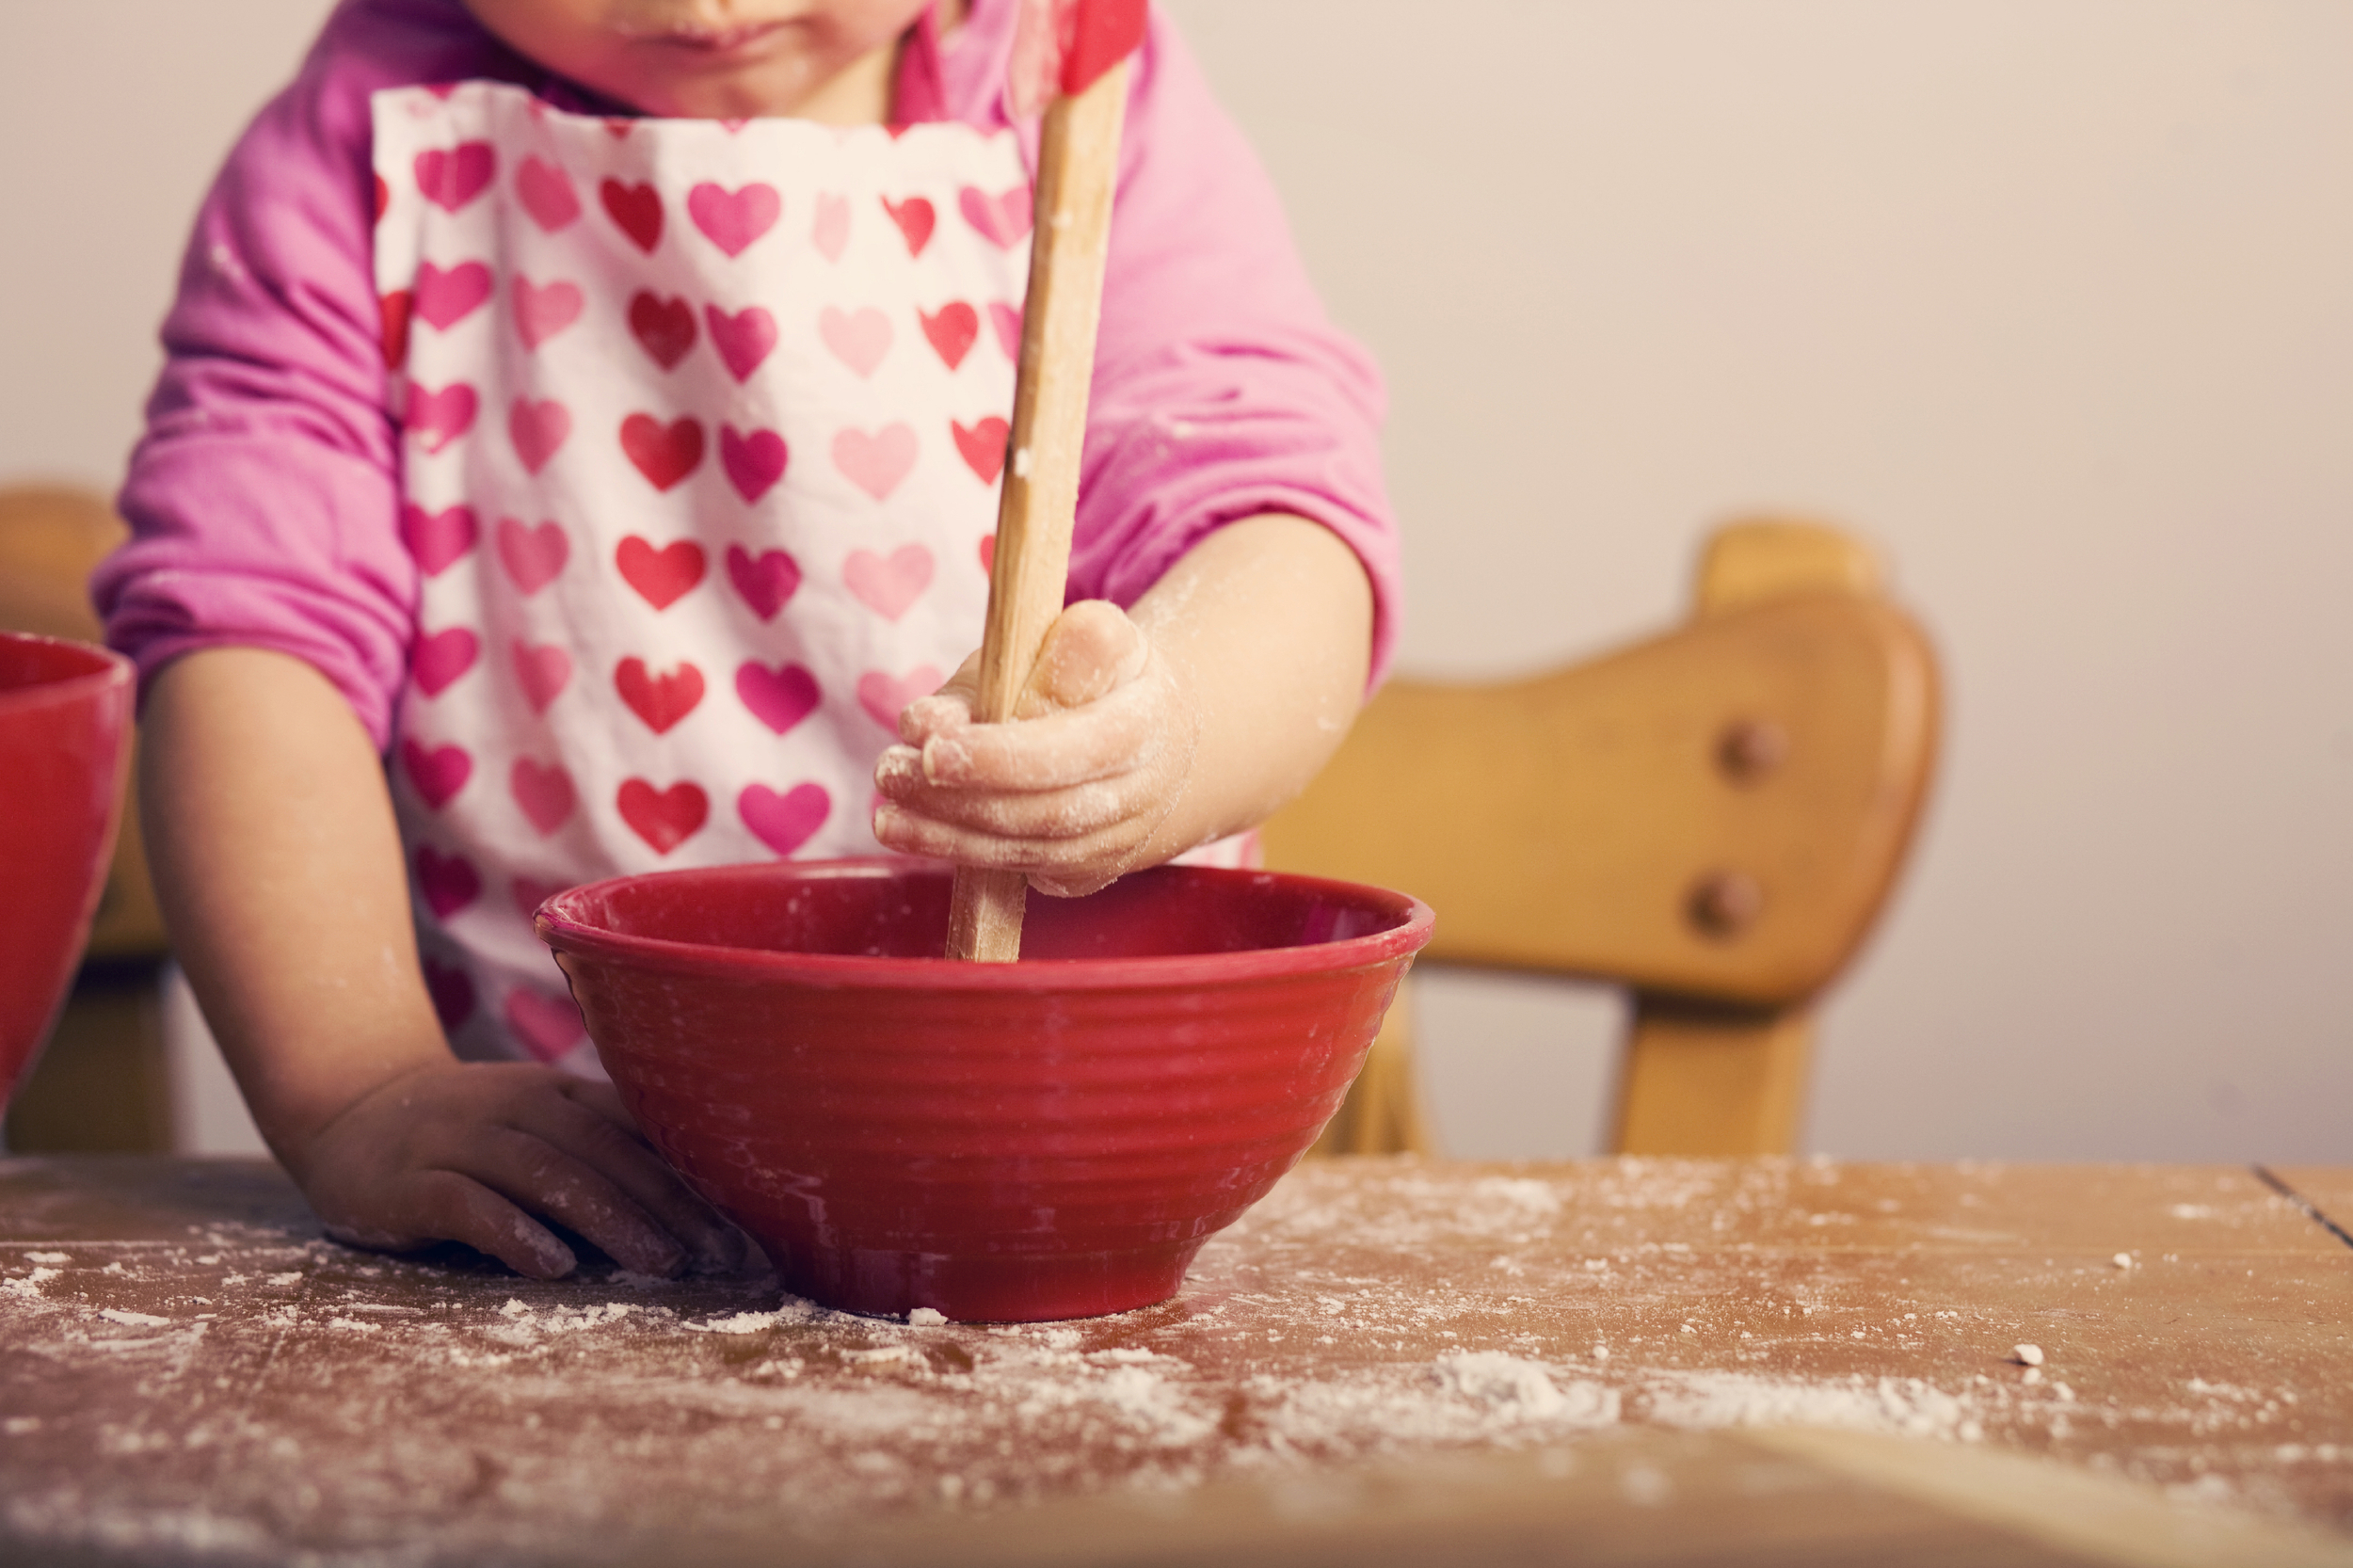 10 Tips to Teach Your Kids About Cooking